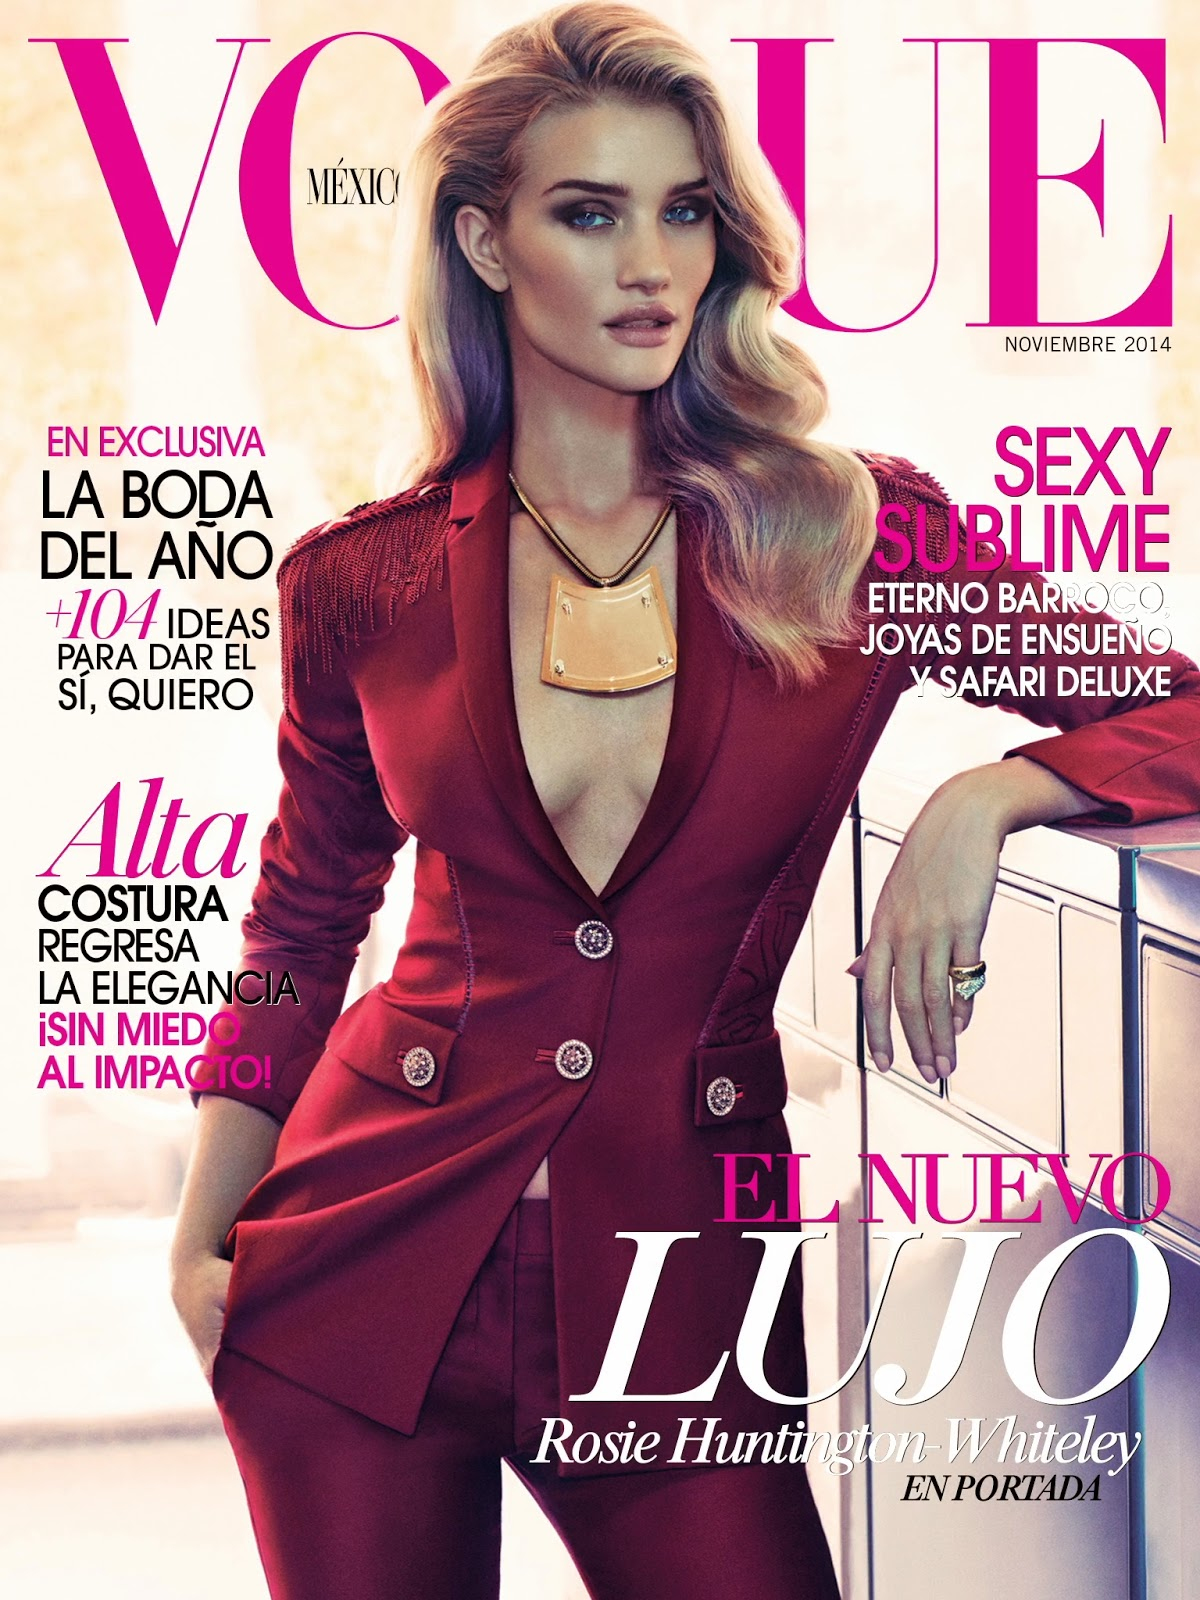 Smile: Rosie Huntington-Whiteley In Vogue Mexico November